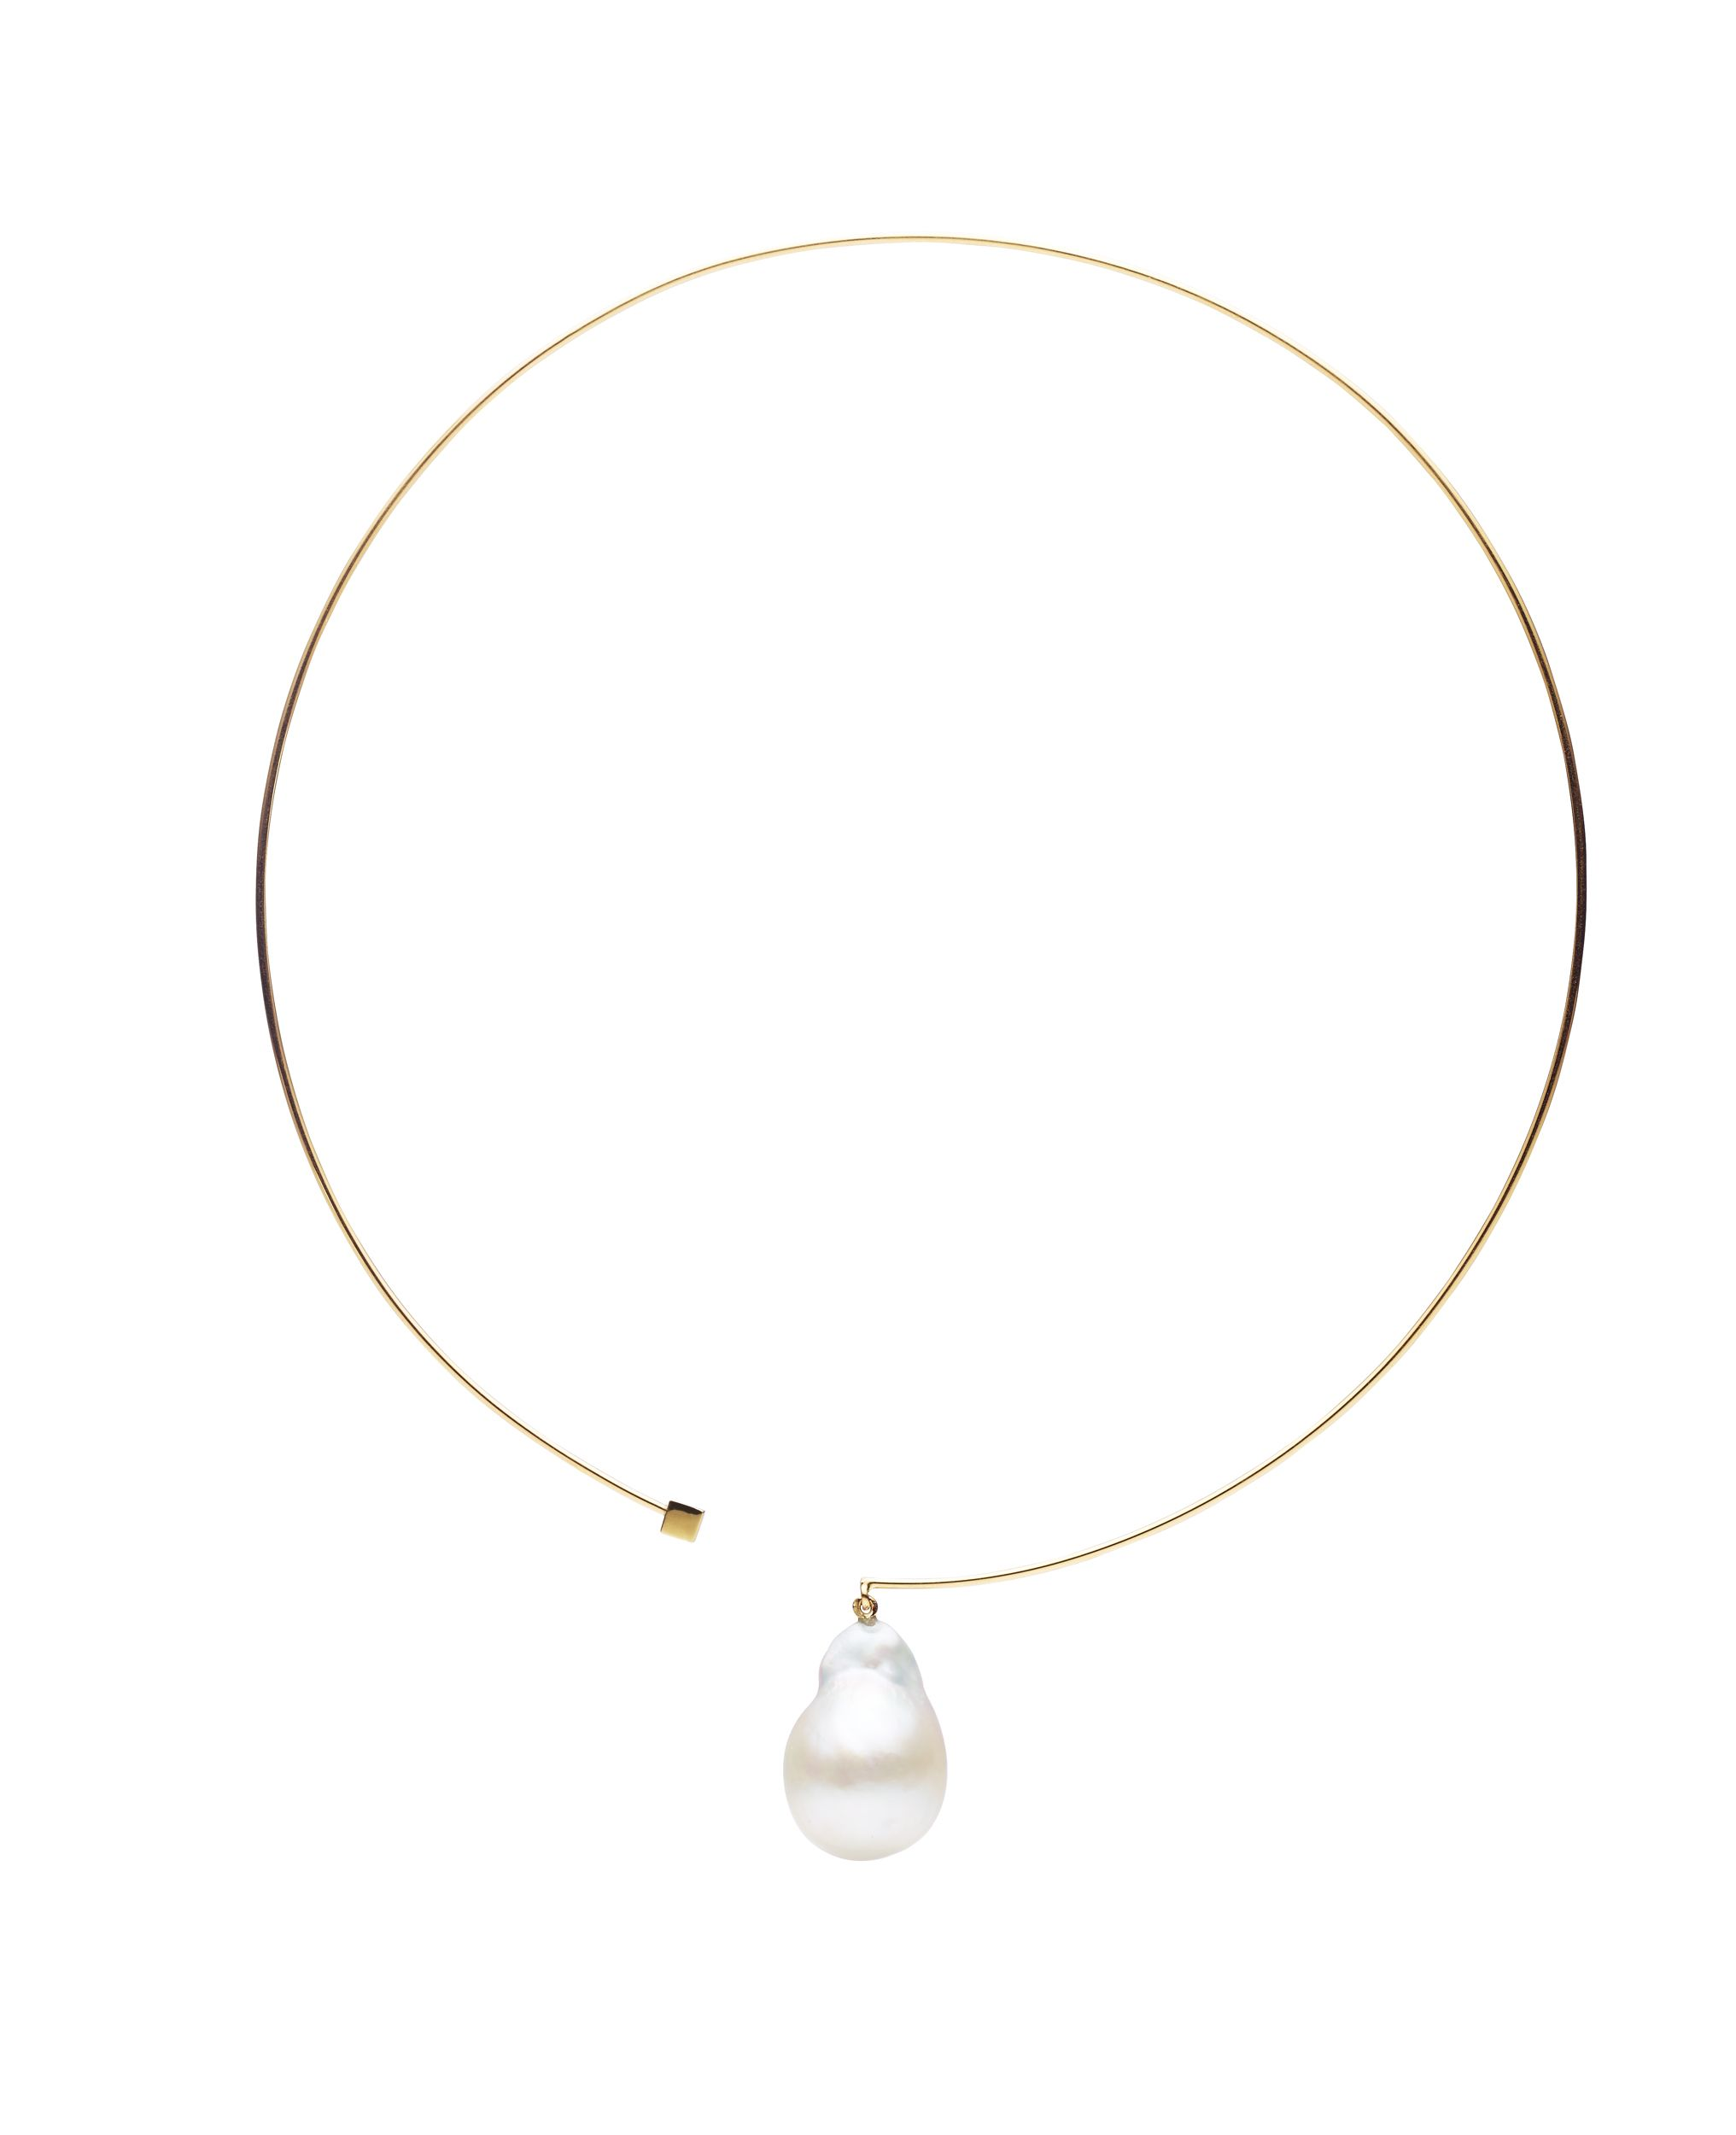 18YG South Sea Pearl Mia necklace